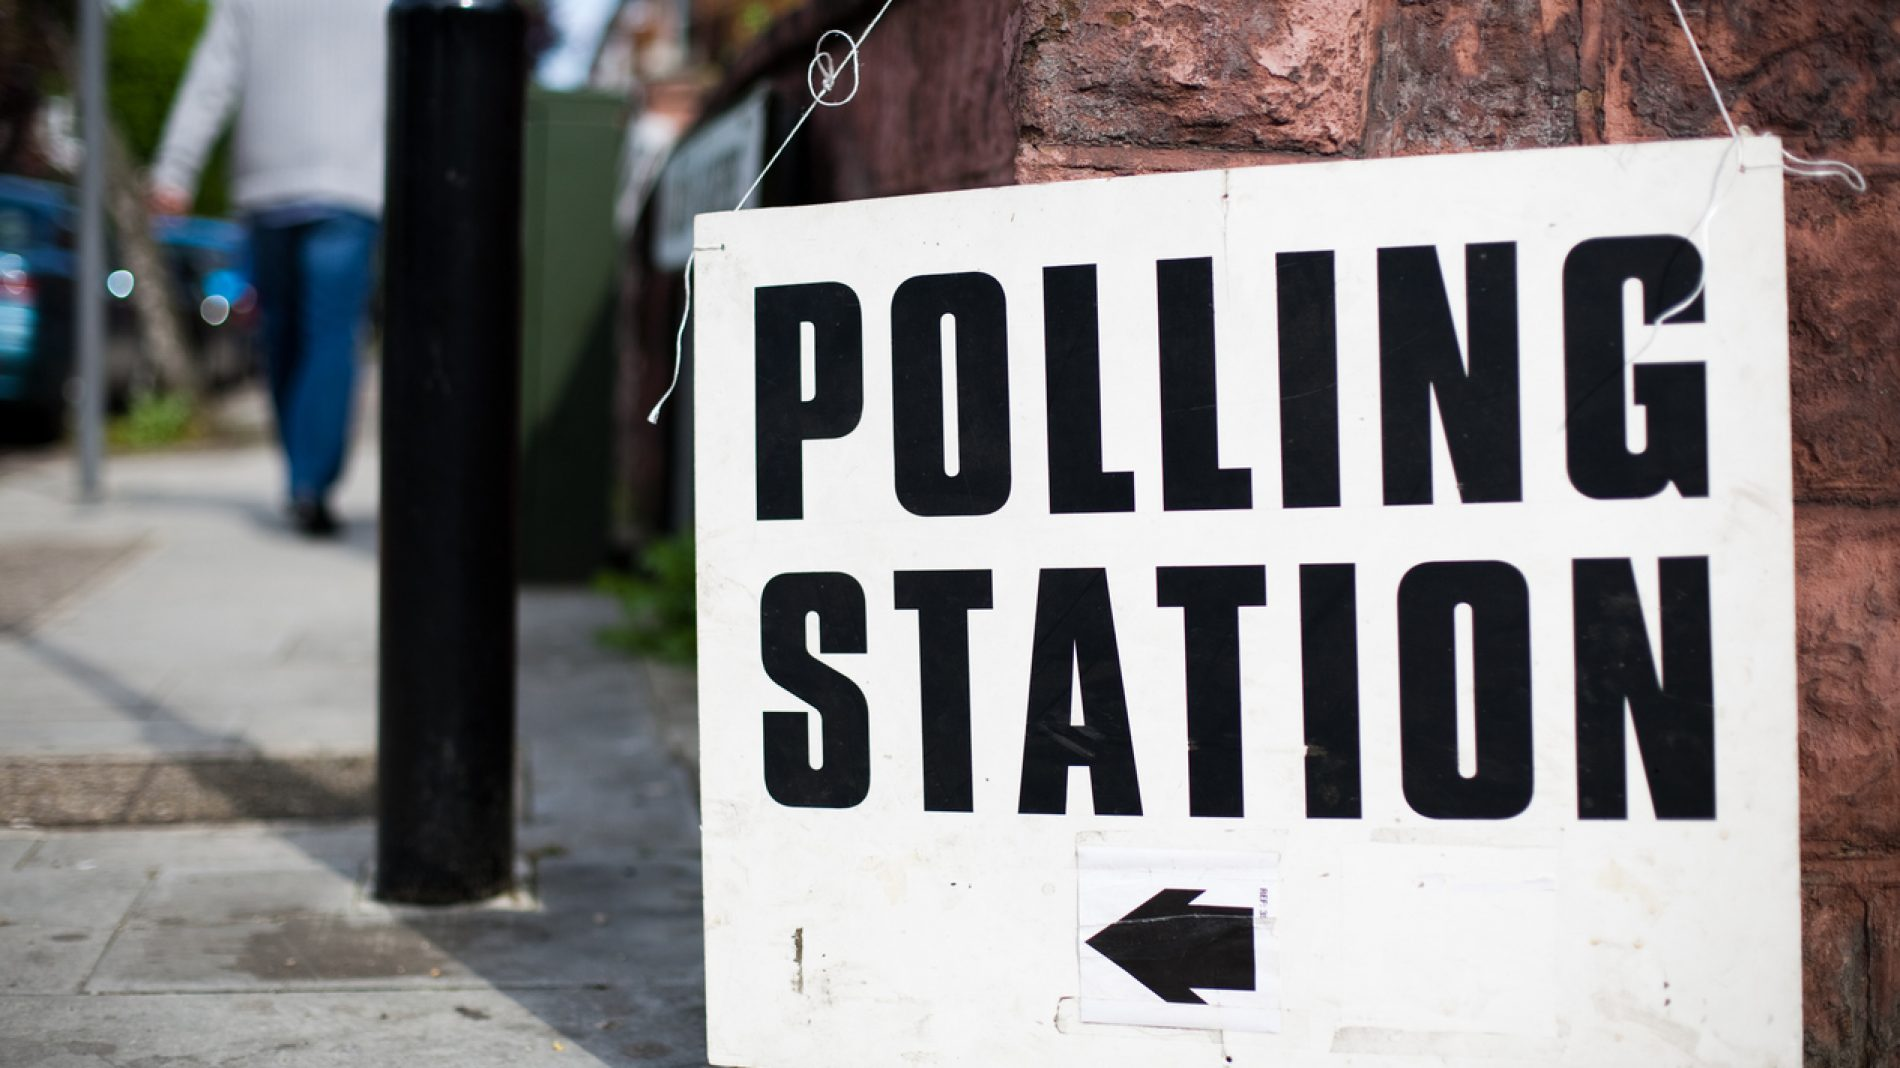 A uk Polling station sign hooked on a wall on a street